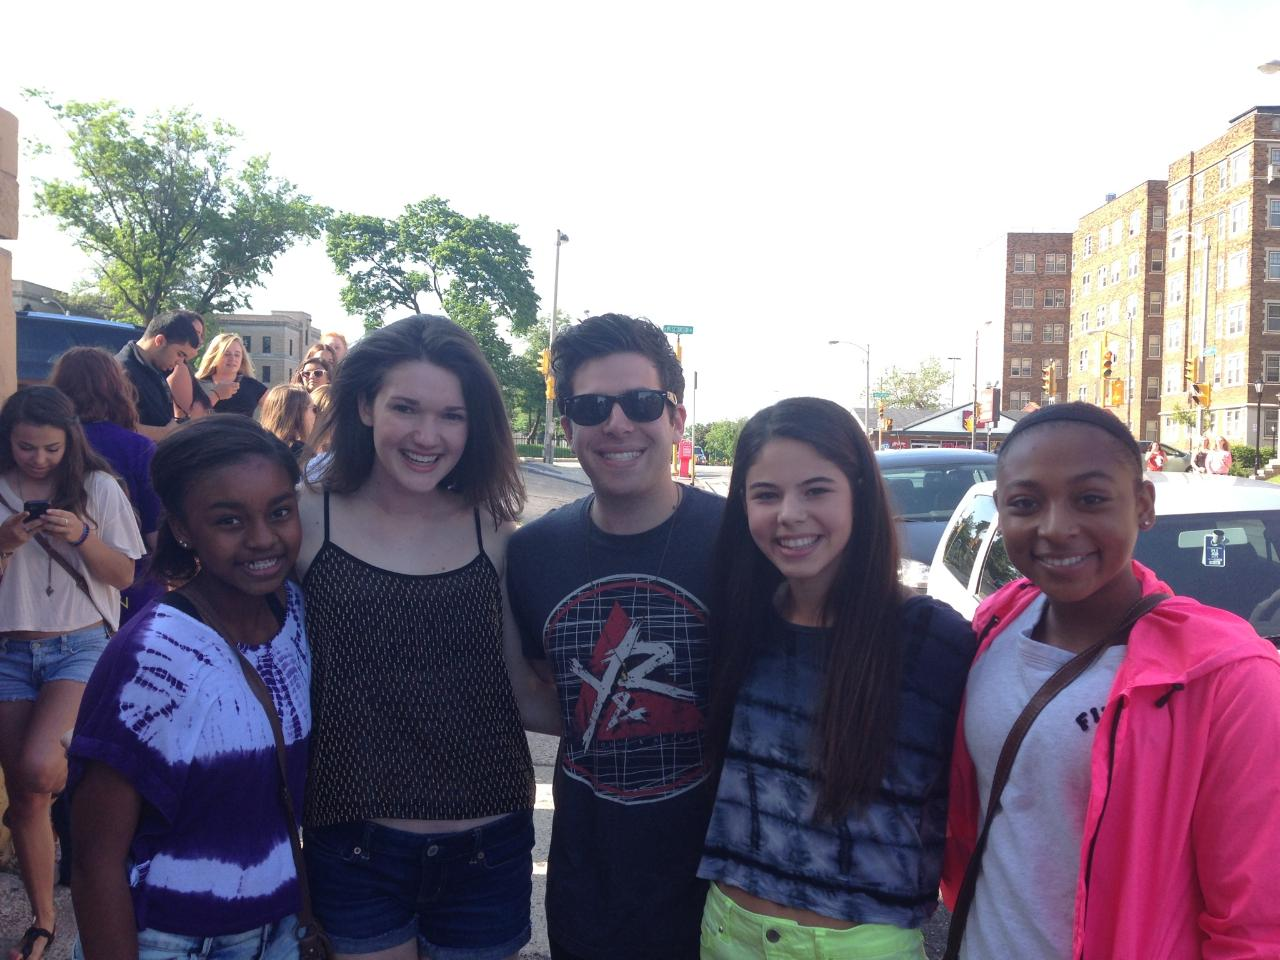 Hoodie allen lauren in lilly elise me hoodie ellie and morgan when we met him for the first time outside m4hsunfo